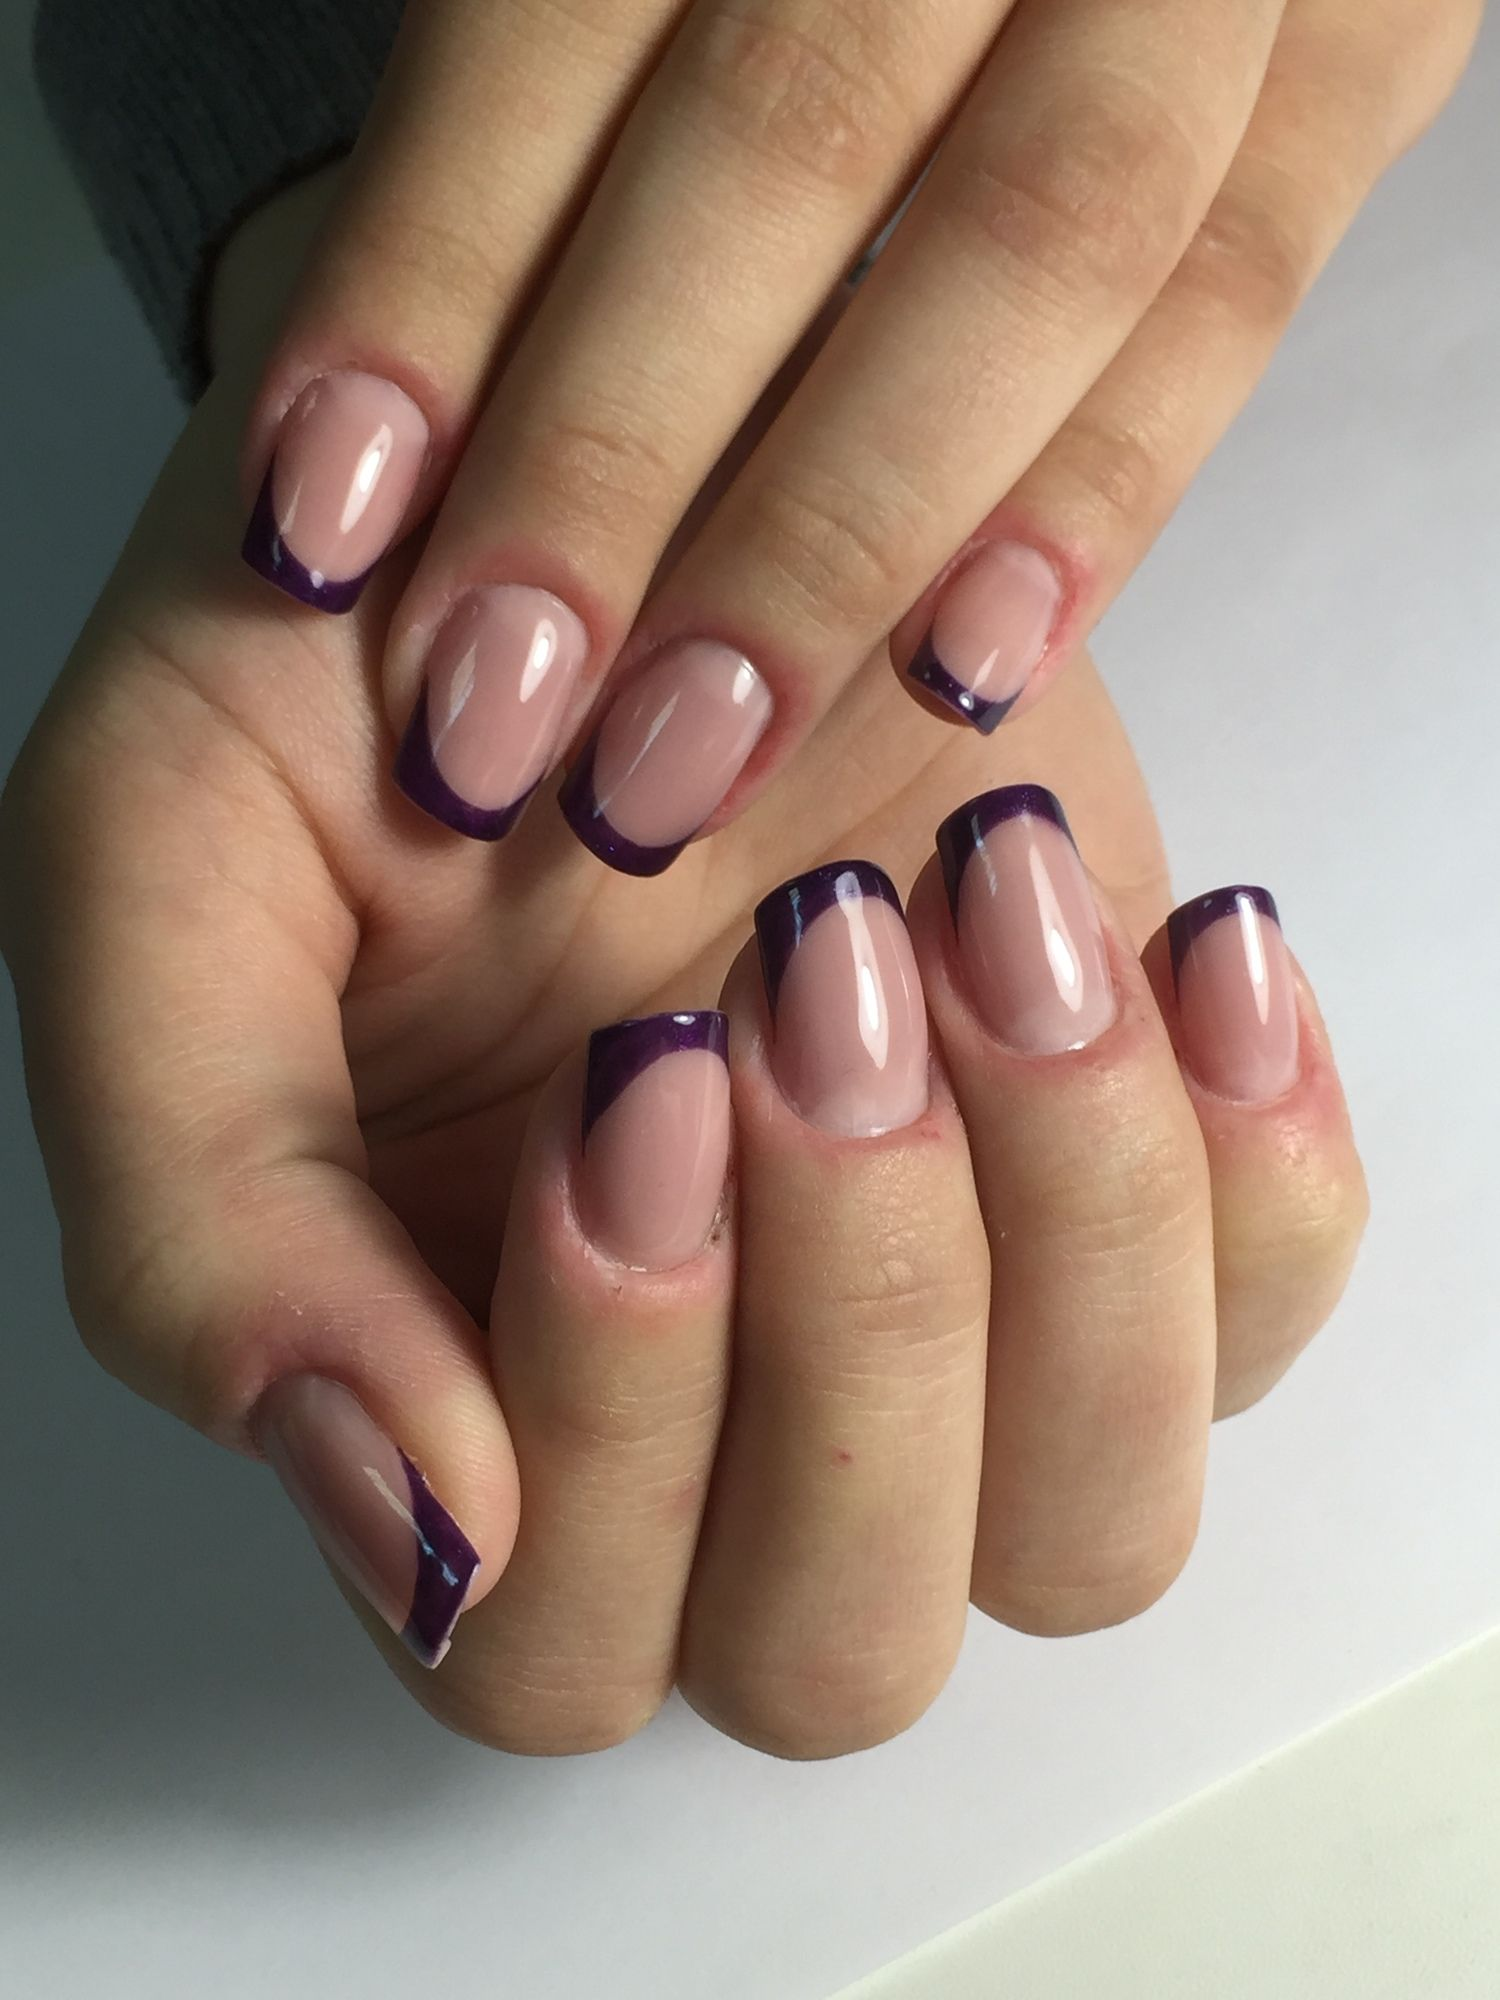 Gel Nail Extensions With French Tips Done Using Free Hand Soft Square Shape Gelails Frenchnails Frenchtips Nails Brighton